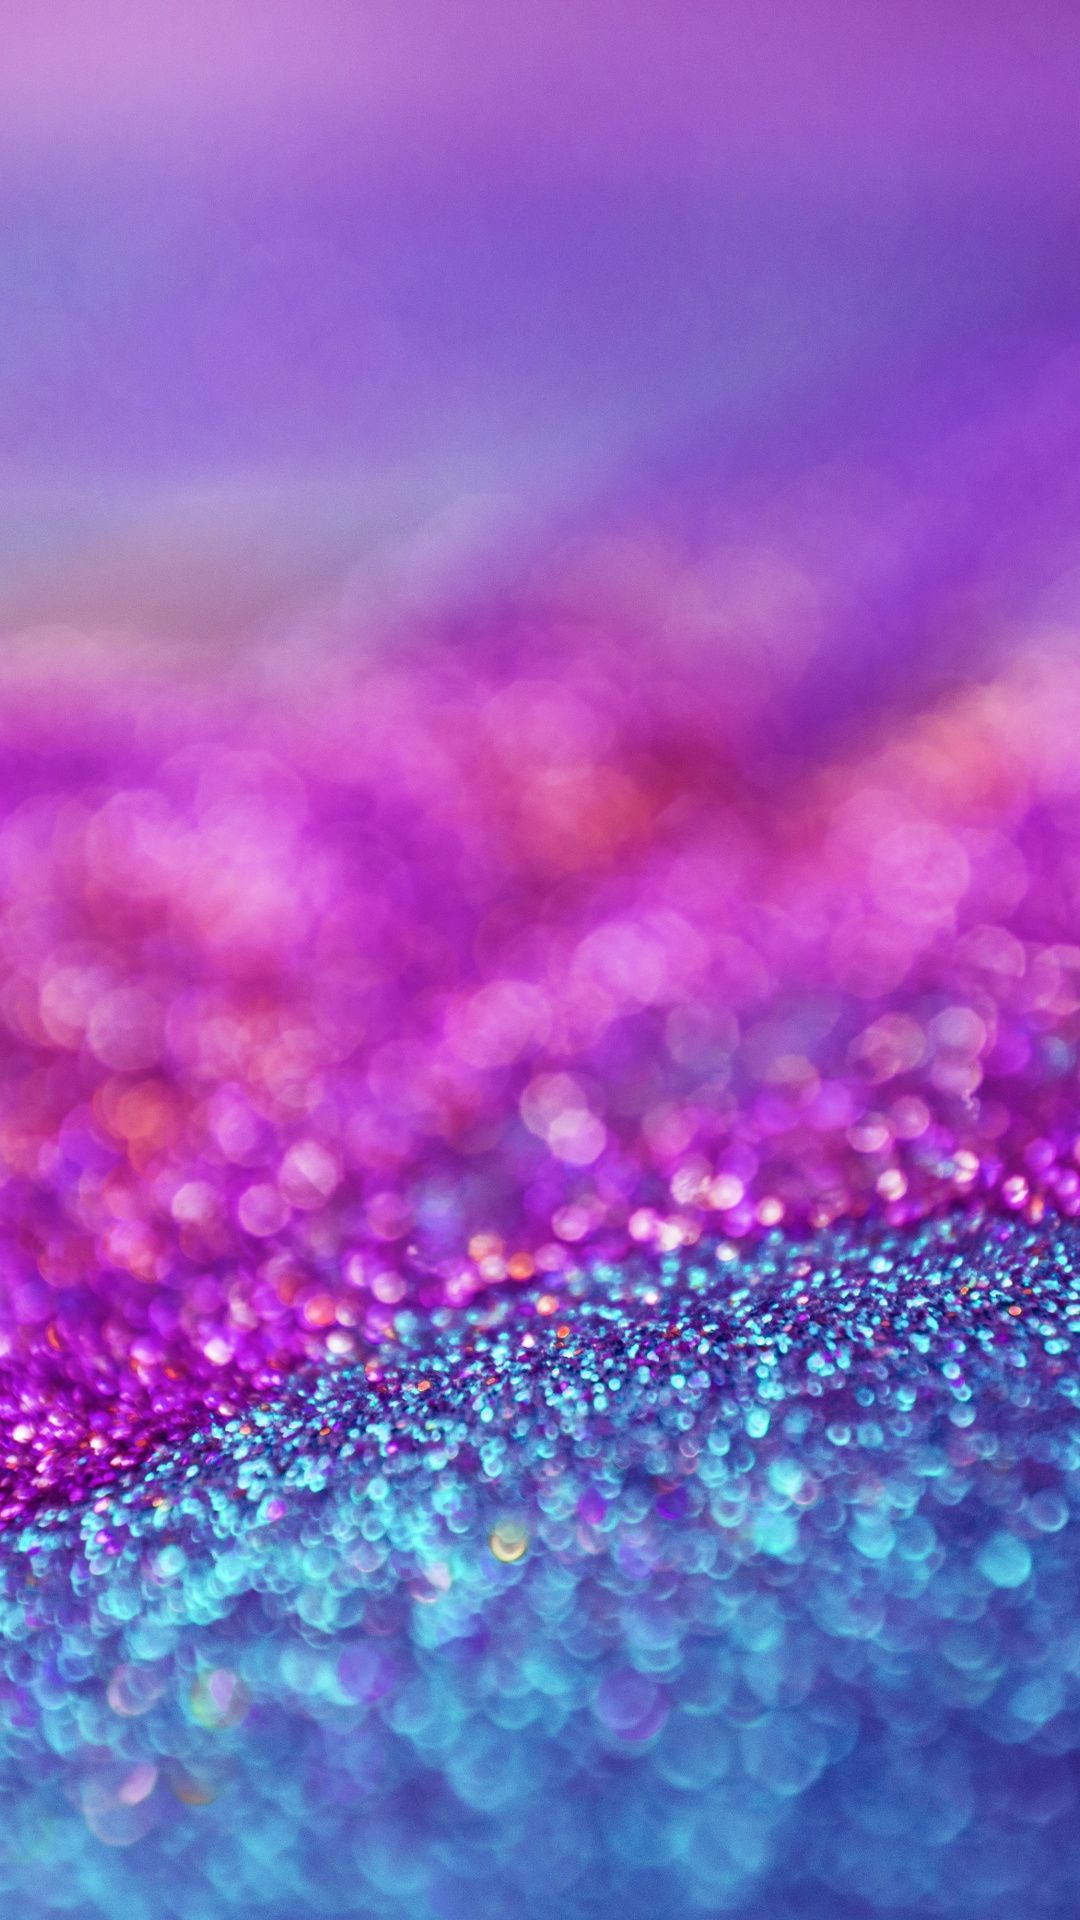 Glitter Macro Bokeh Colorful 1080x1920 Wallpaper Background Pictures Iphone Wallpaper Bright Backdrops Backgrounds